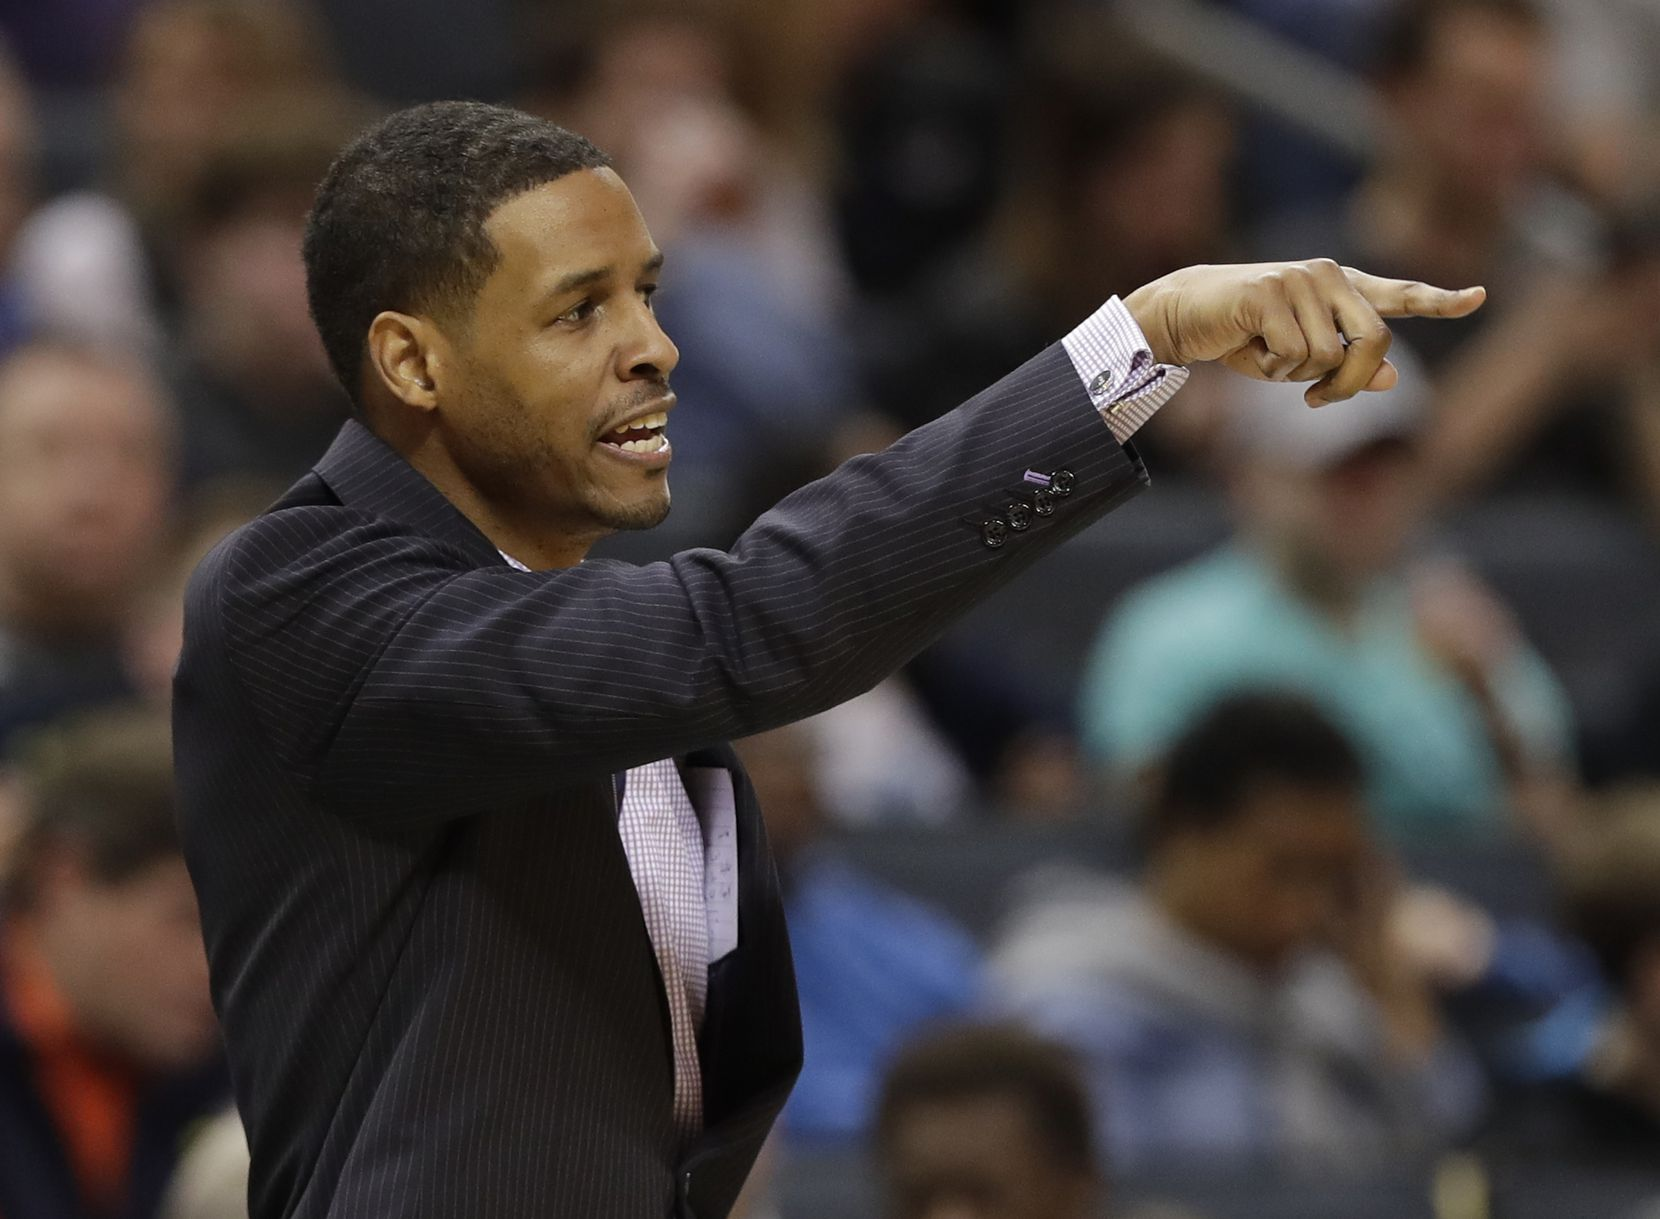 Charlotte Hornets associate head coach Stephen Silas directs his team against the Utah Jazz during the first half of an NBA basketball game in Charlotte, N.C., Friday, Jan. 12, 2018. (AP Photo/Chuck Burton)